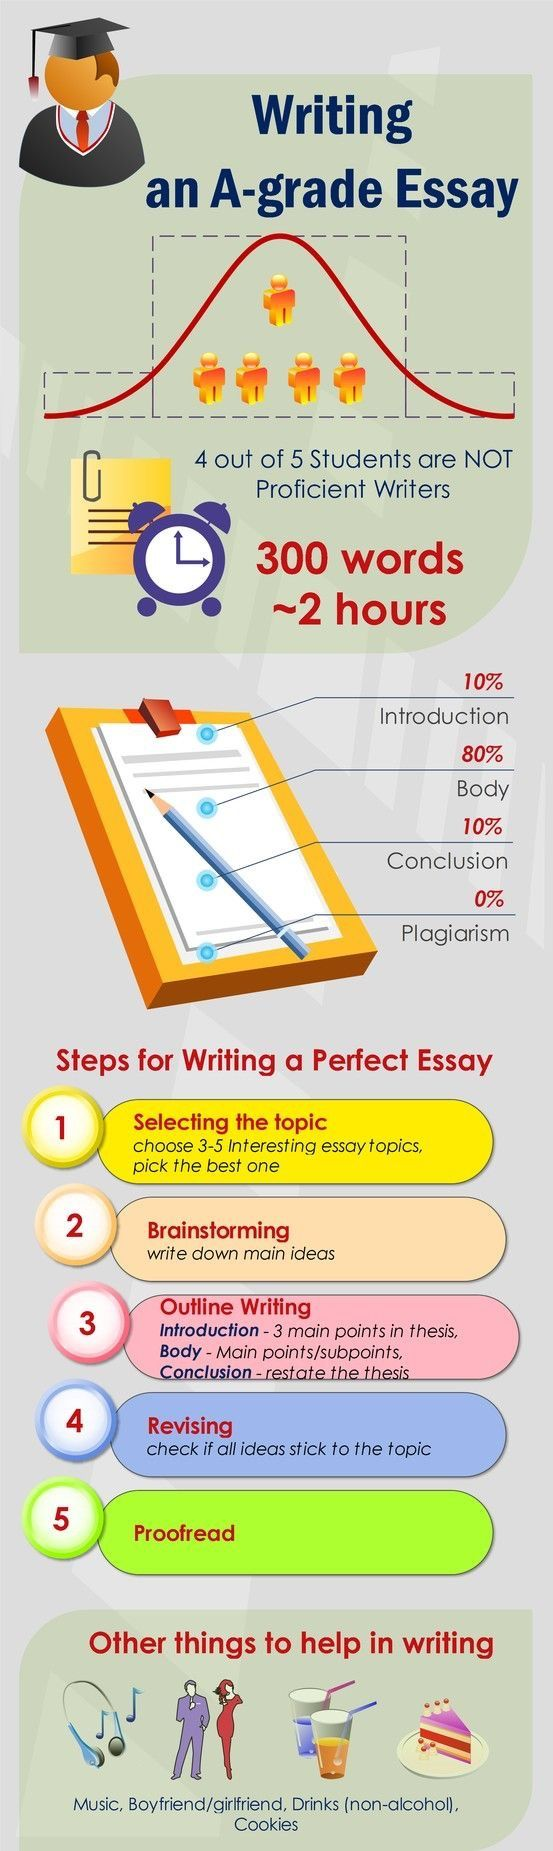 Usc writing supplement gradesaver